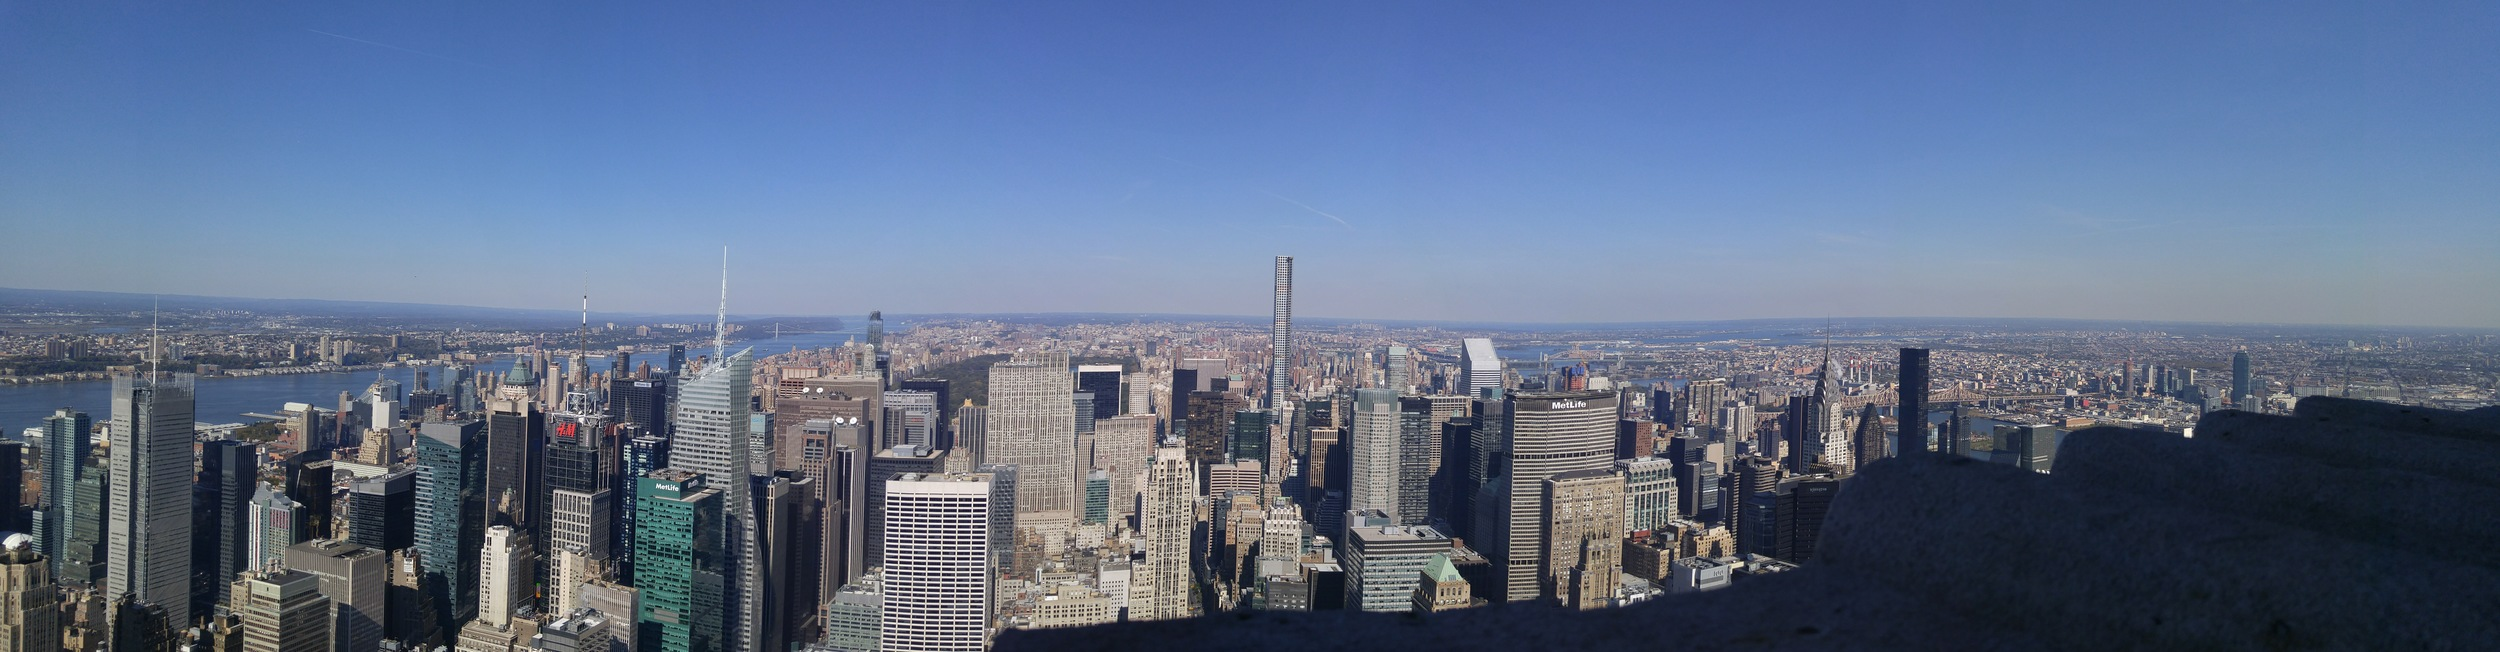 Empire State Building5.jpg